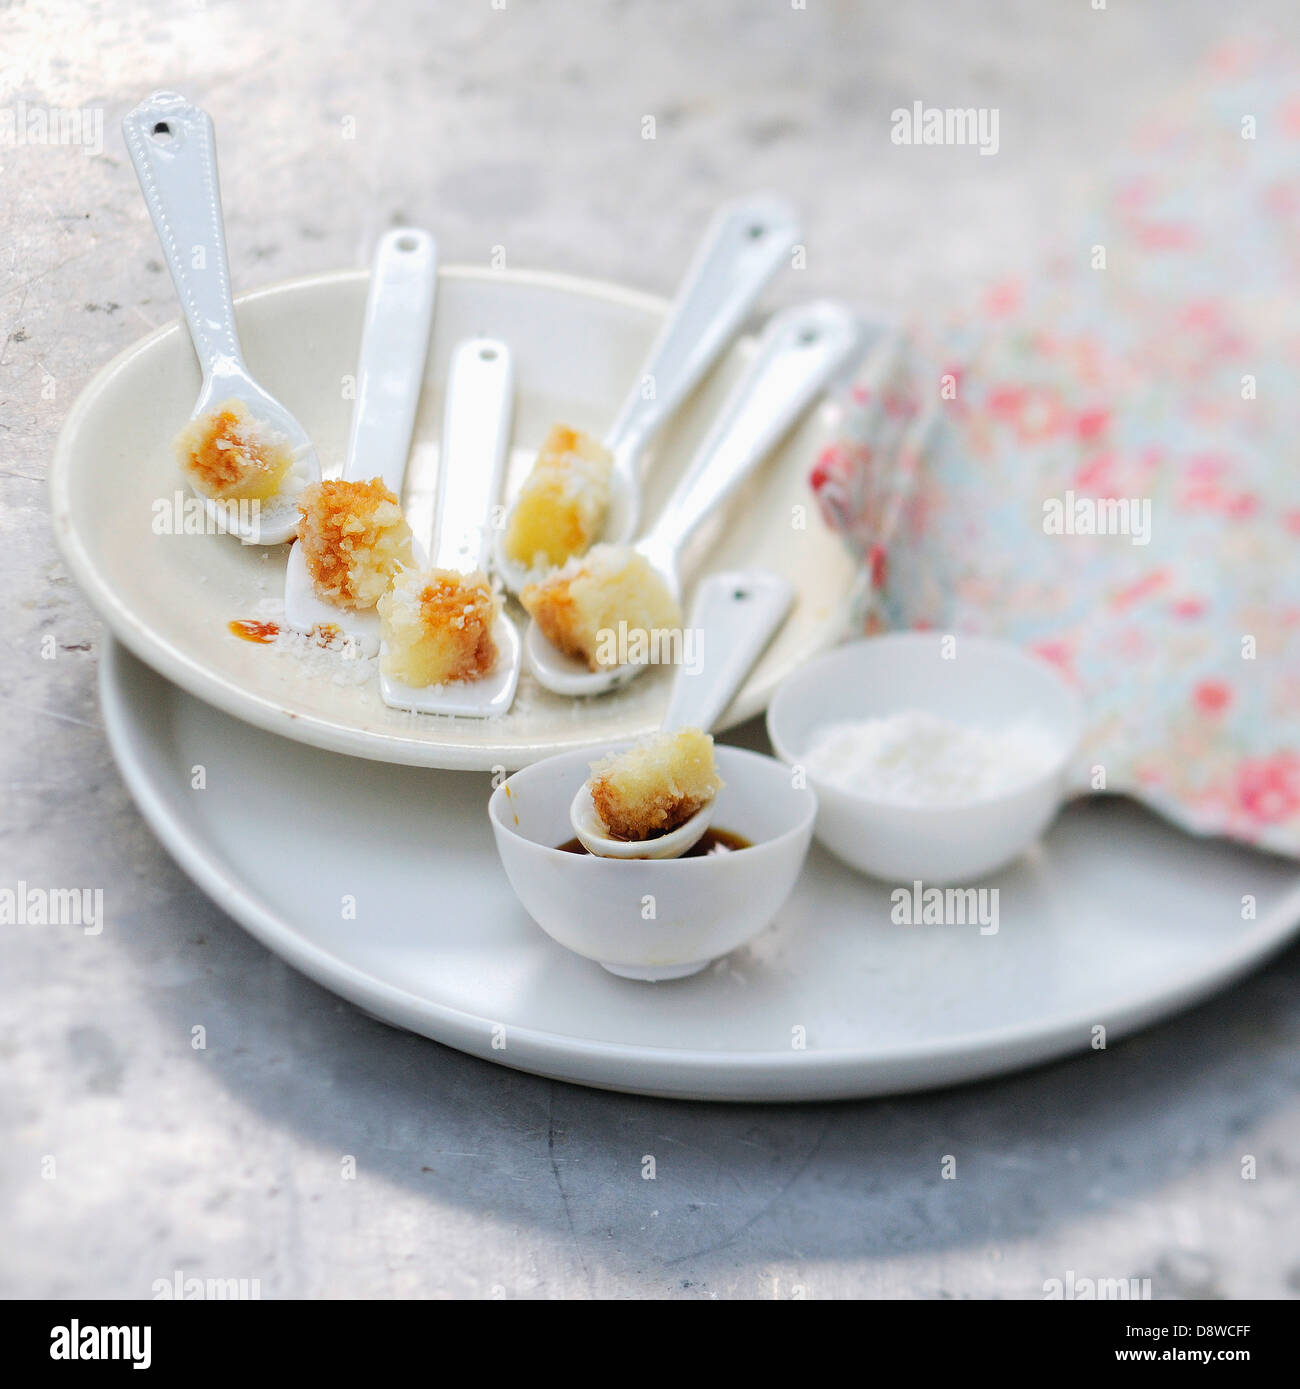 Spoonfuls of coconut fondant with caramel - Stock Image